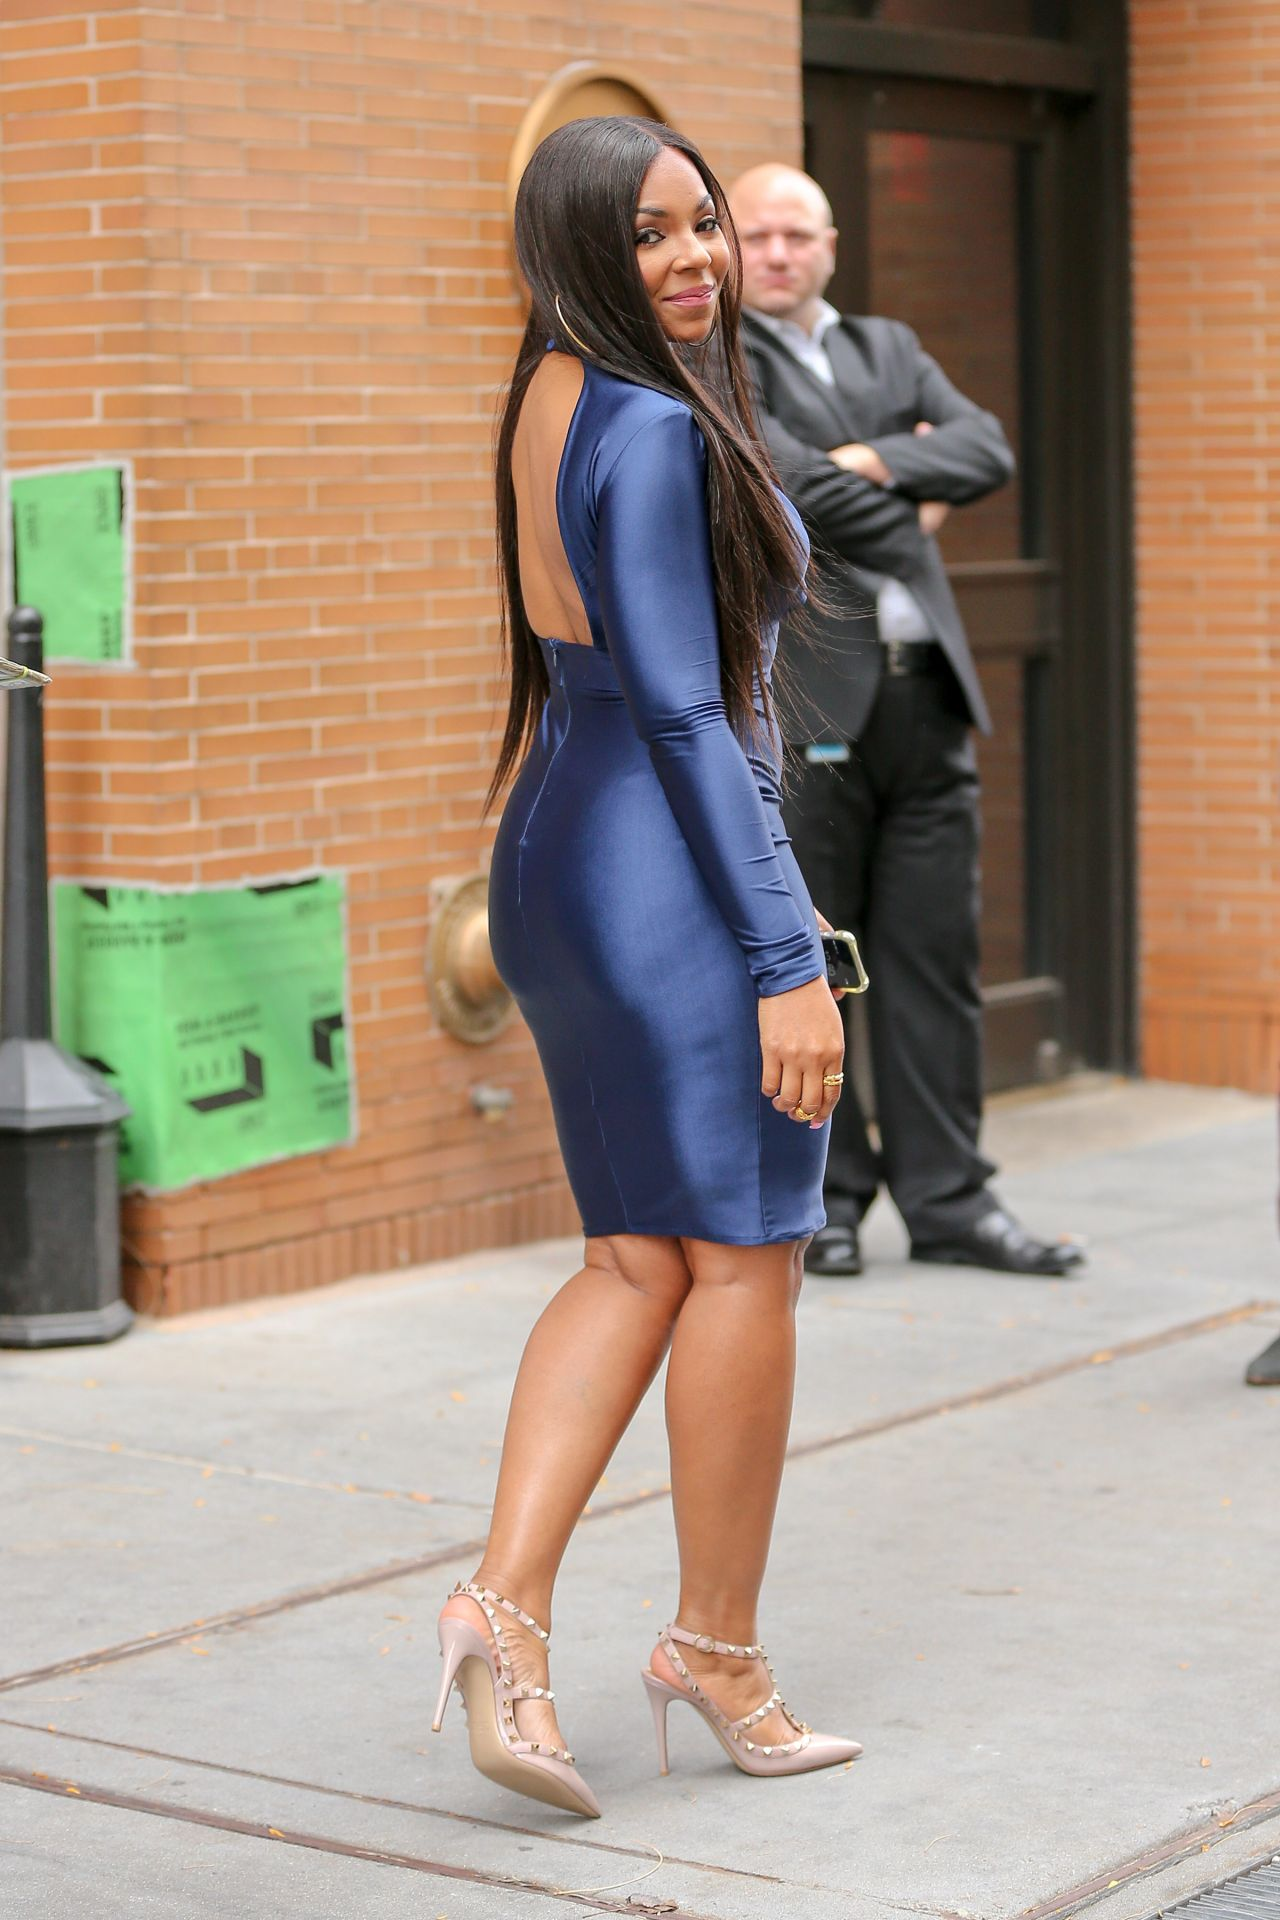 Ashanti In Clingy Wet Look Dress After Co Hosting The